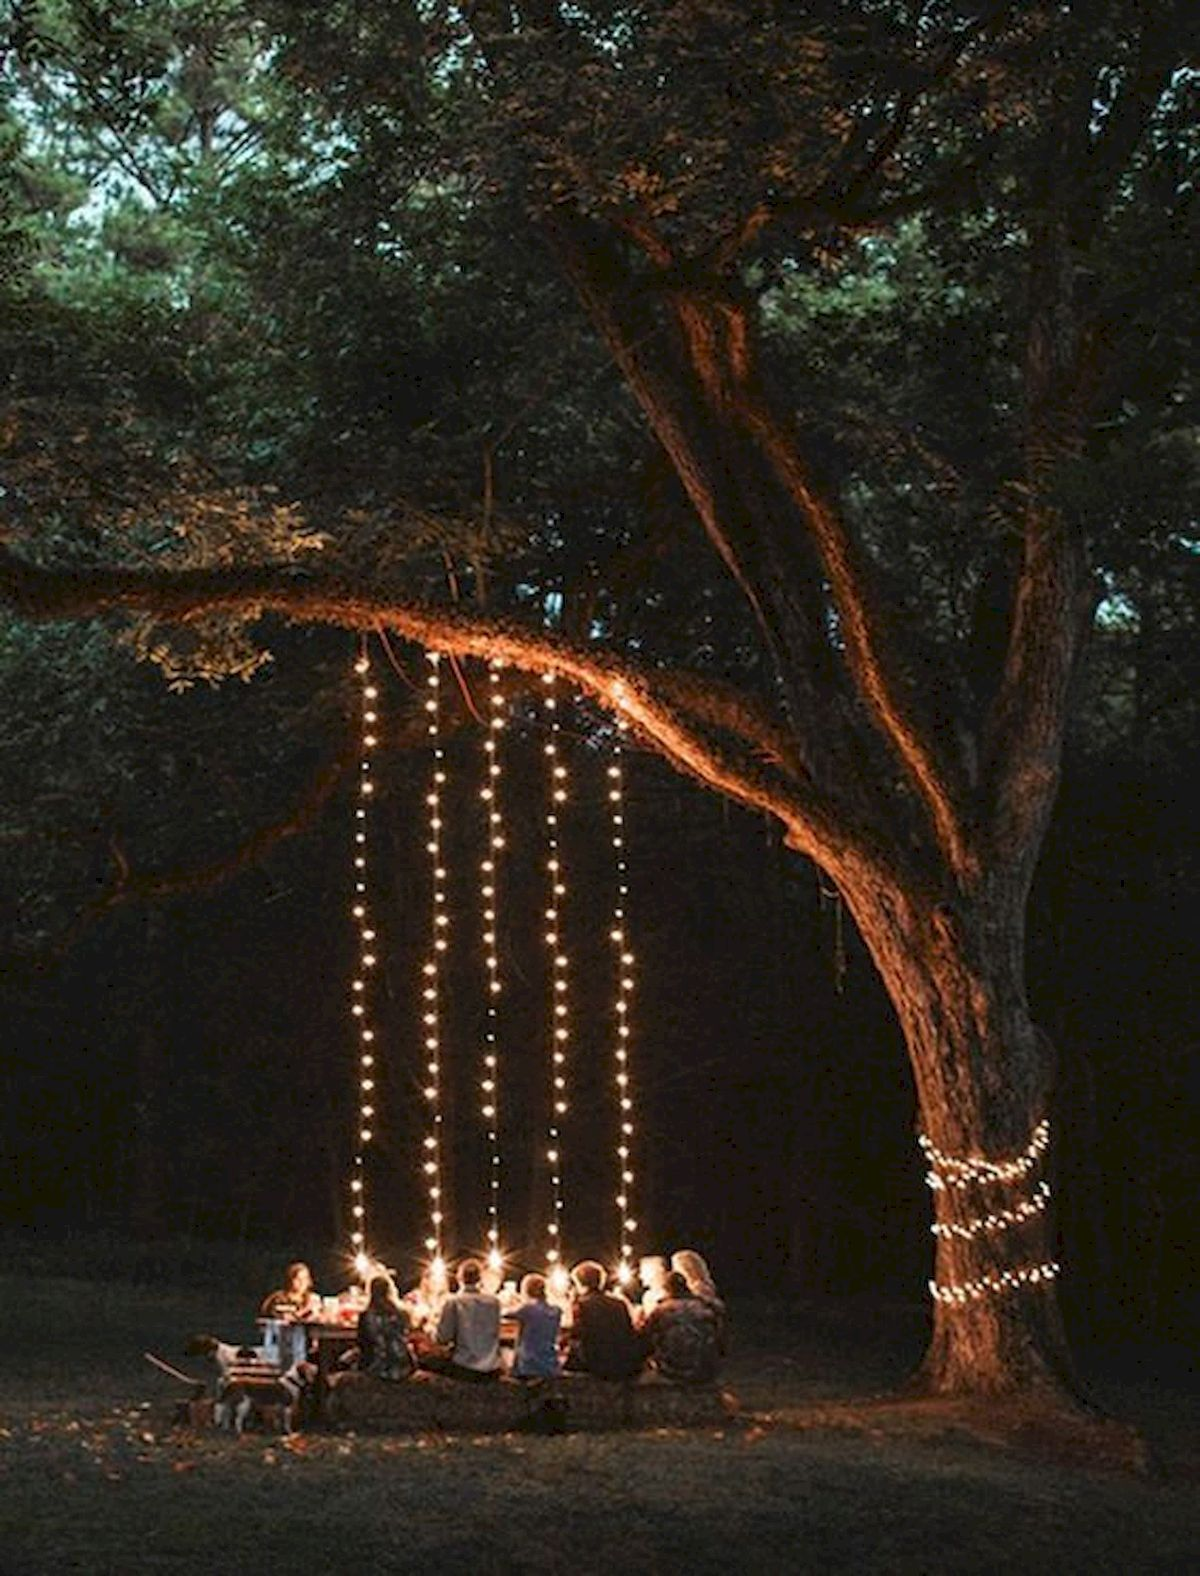 Pin By Mitzi Kenney On Photography Outdoor Outdoor Dinner Garden Party